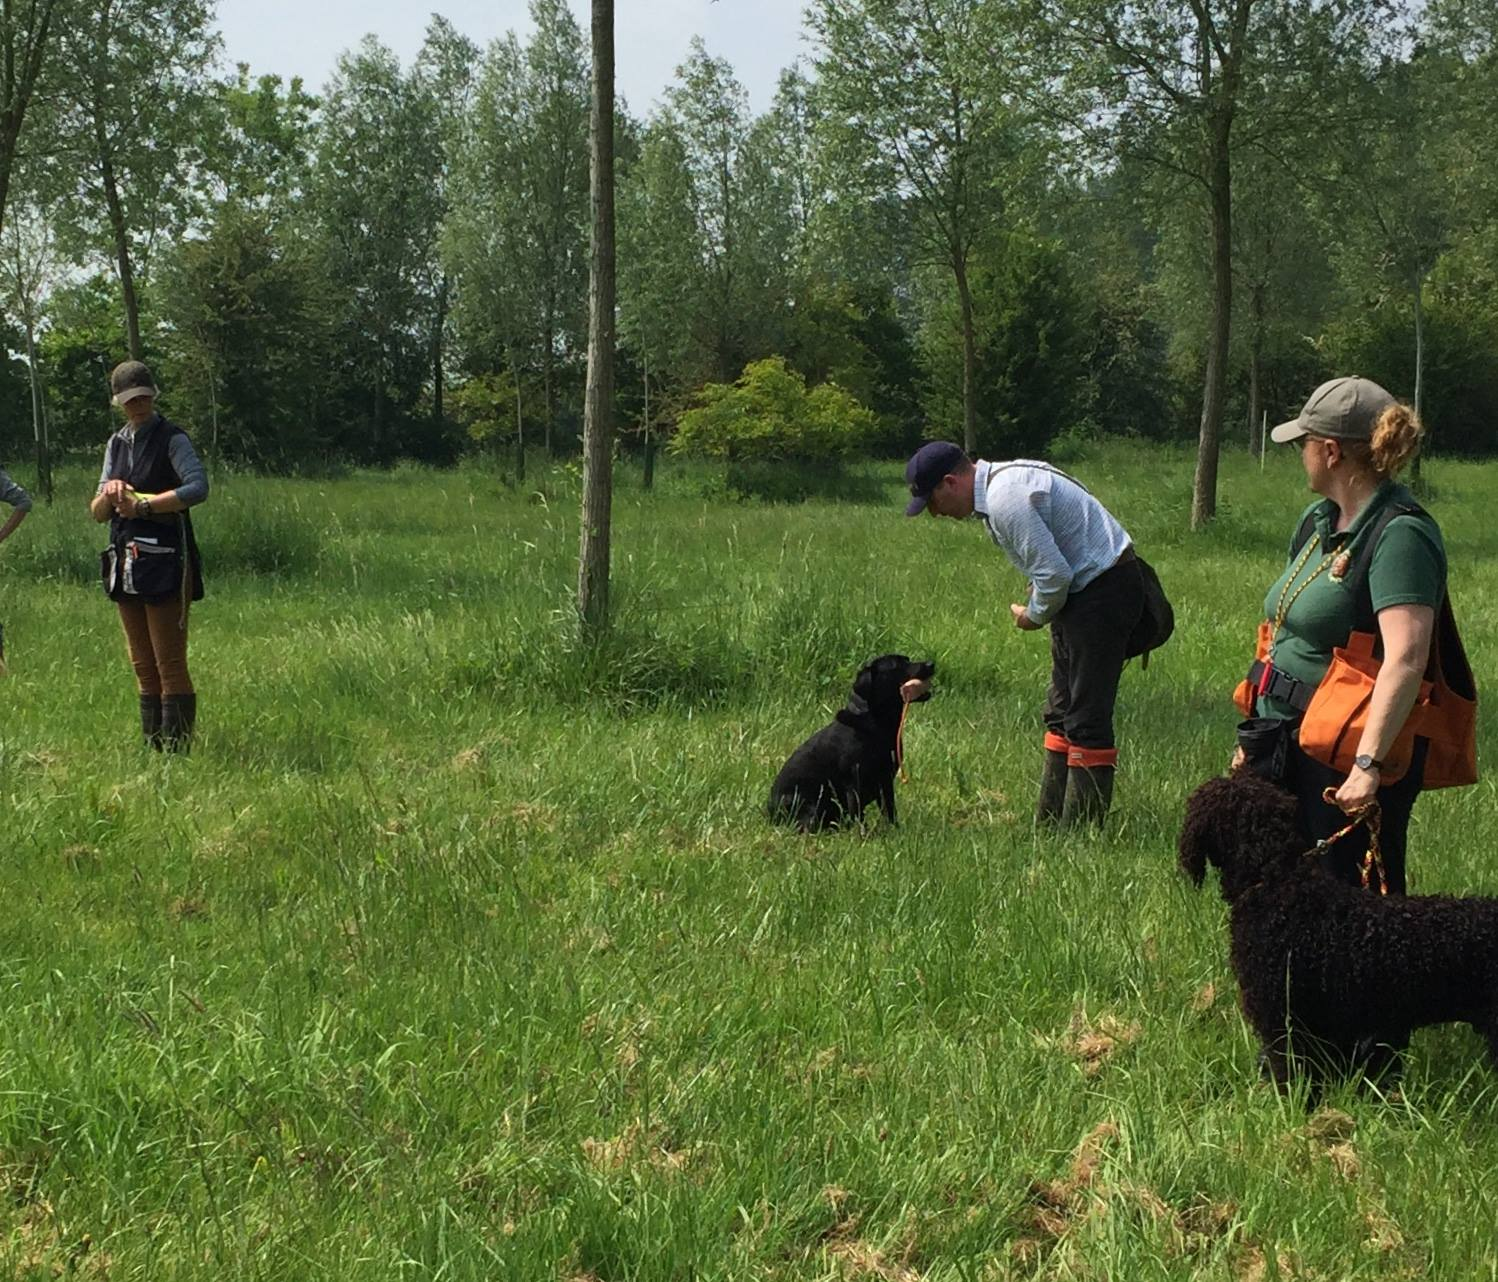 Standlake Retriever training - session 2 the walk up retrieved